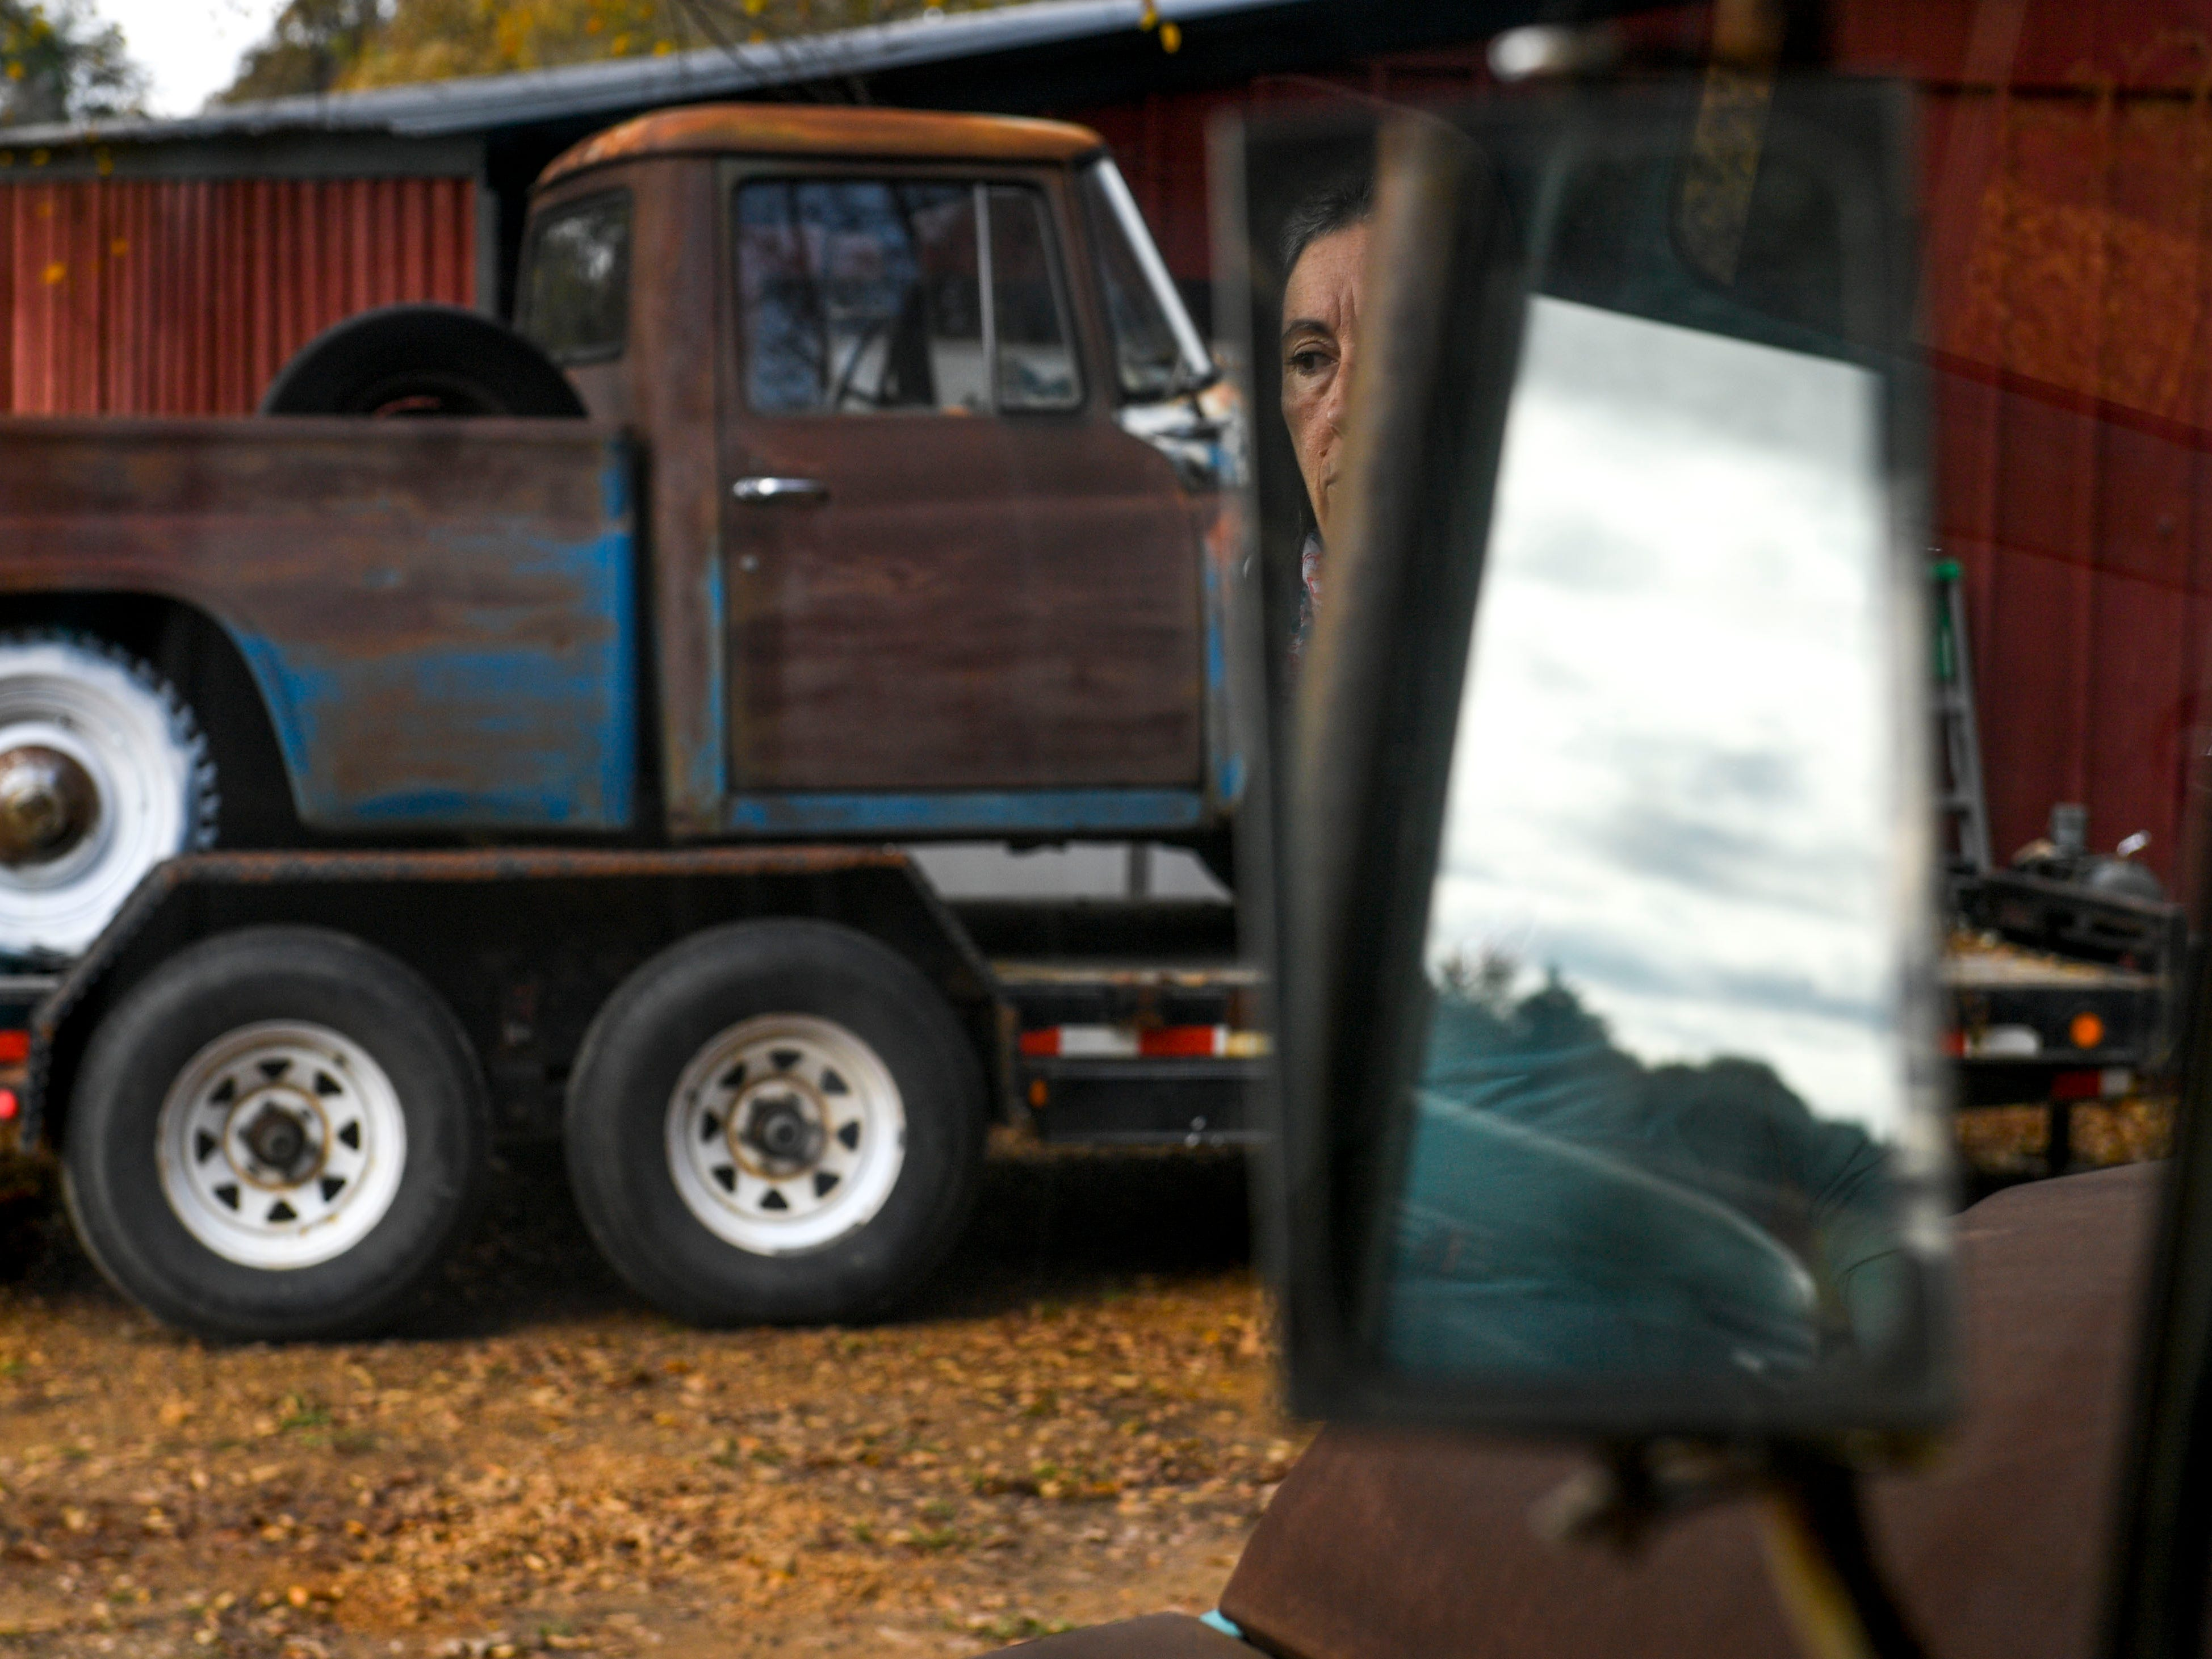 Valeria Pitoni can be seen in the reflection of a International's side mirror at Stillwaters Farm in Henderson, Tenn., on Monday, Nov. 5, 2018.